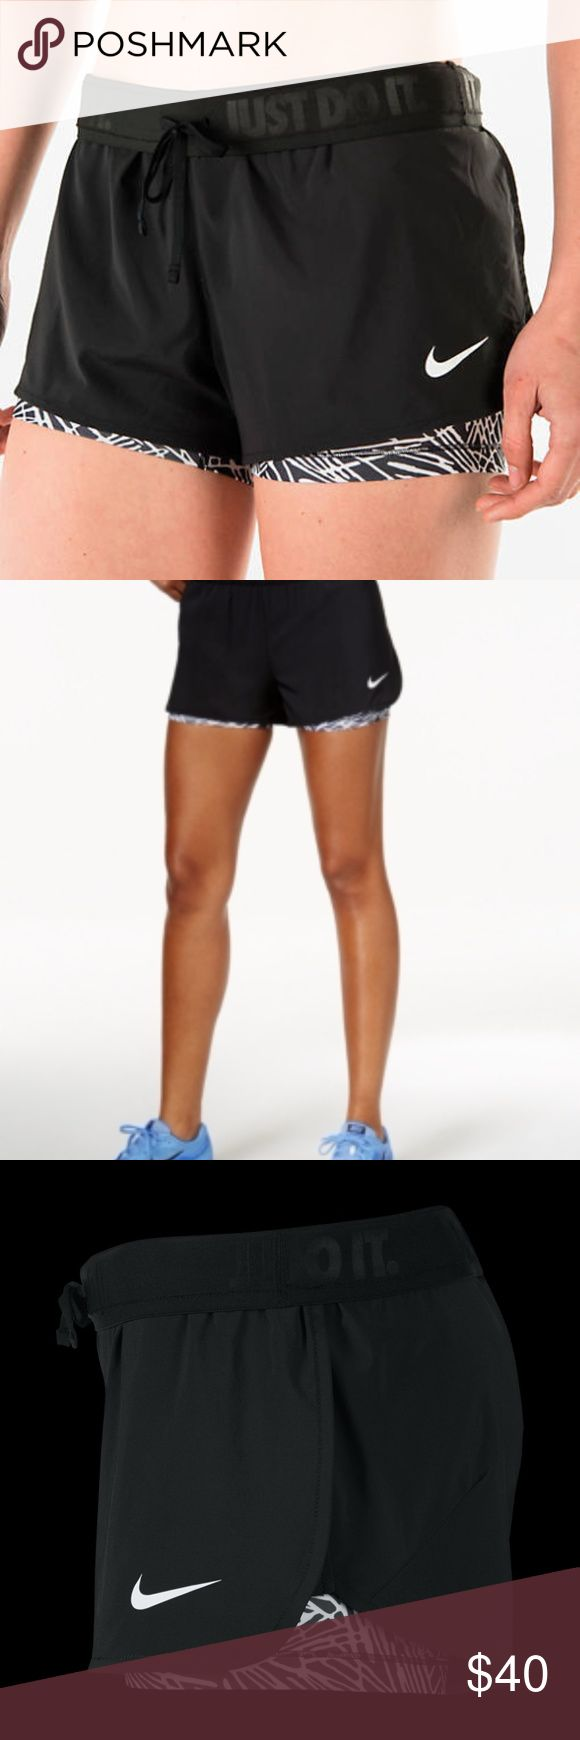 """Nike Dri Fit Black Full Flex  2-IN-1 Twist Shorts Excellent Like New Condition:  Measurements Taken While Item Lay Flat: Waist- 13.5"""" Length-10.5""""  Women's Training Shorts Move comfortably in Nike Full Flex 2-in-1 Twist Women's Training Shorts.  The design pairs compressive inner shorts with a stretch-woven outer layer Outer shell has full-flex construction for unrestricted movement. Dri-FIT fabric helps keep you dry and comfortable. Knit inner shorts provide a compressive fit. Side pockets…"""